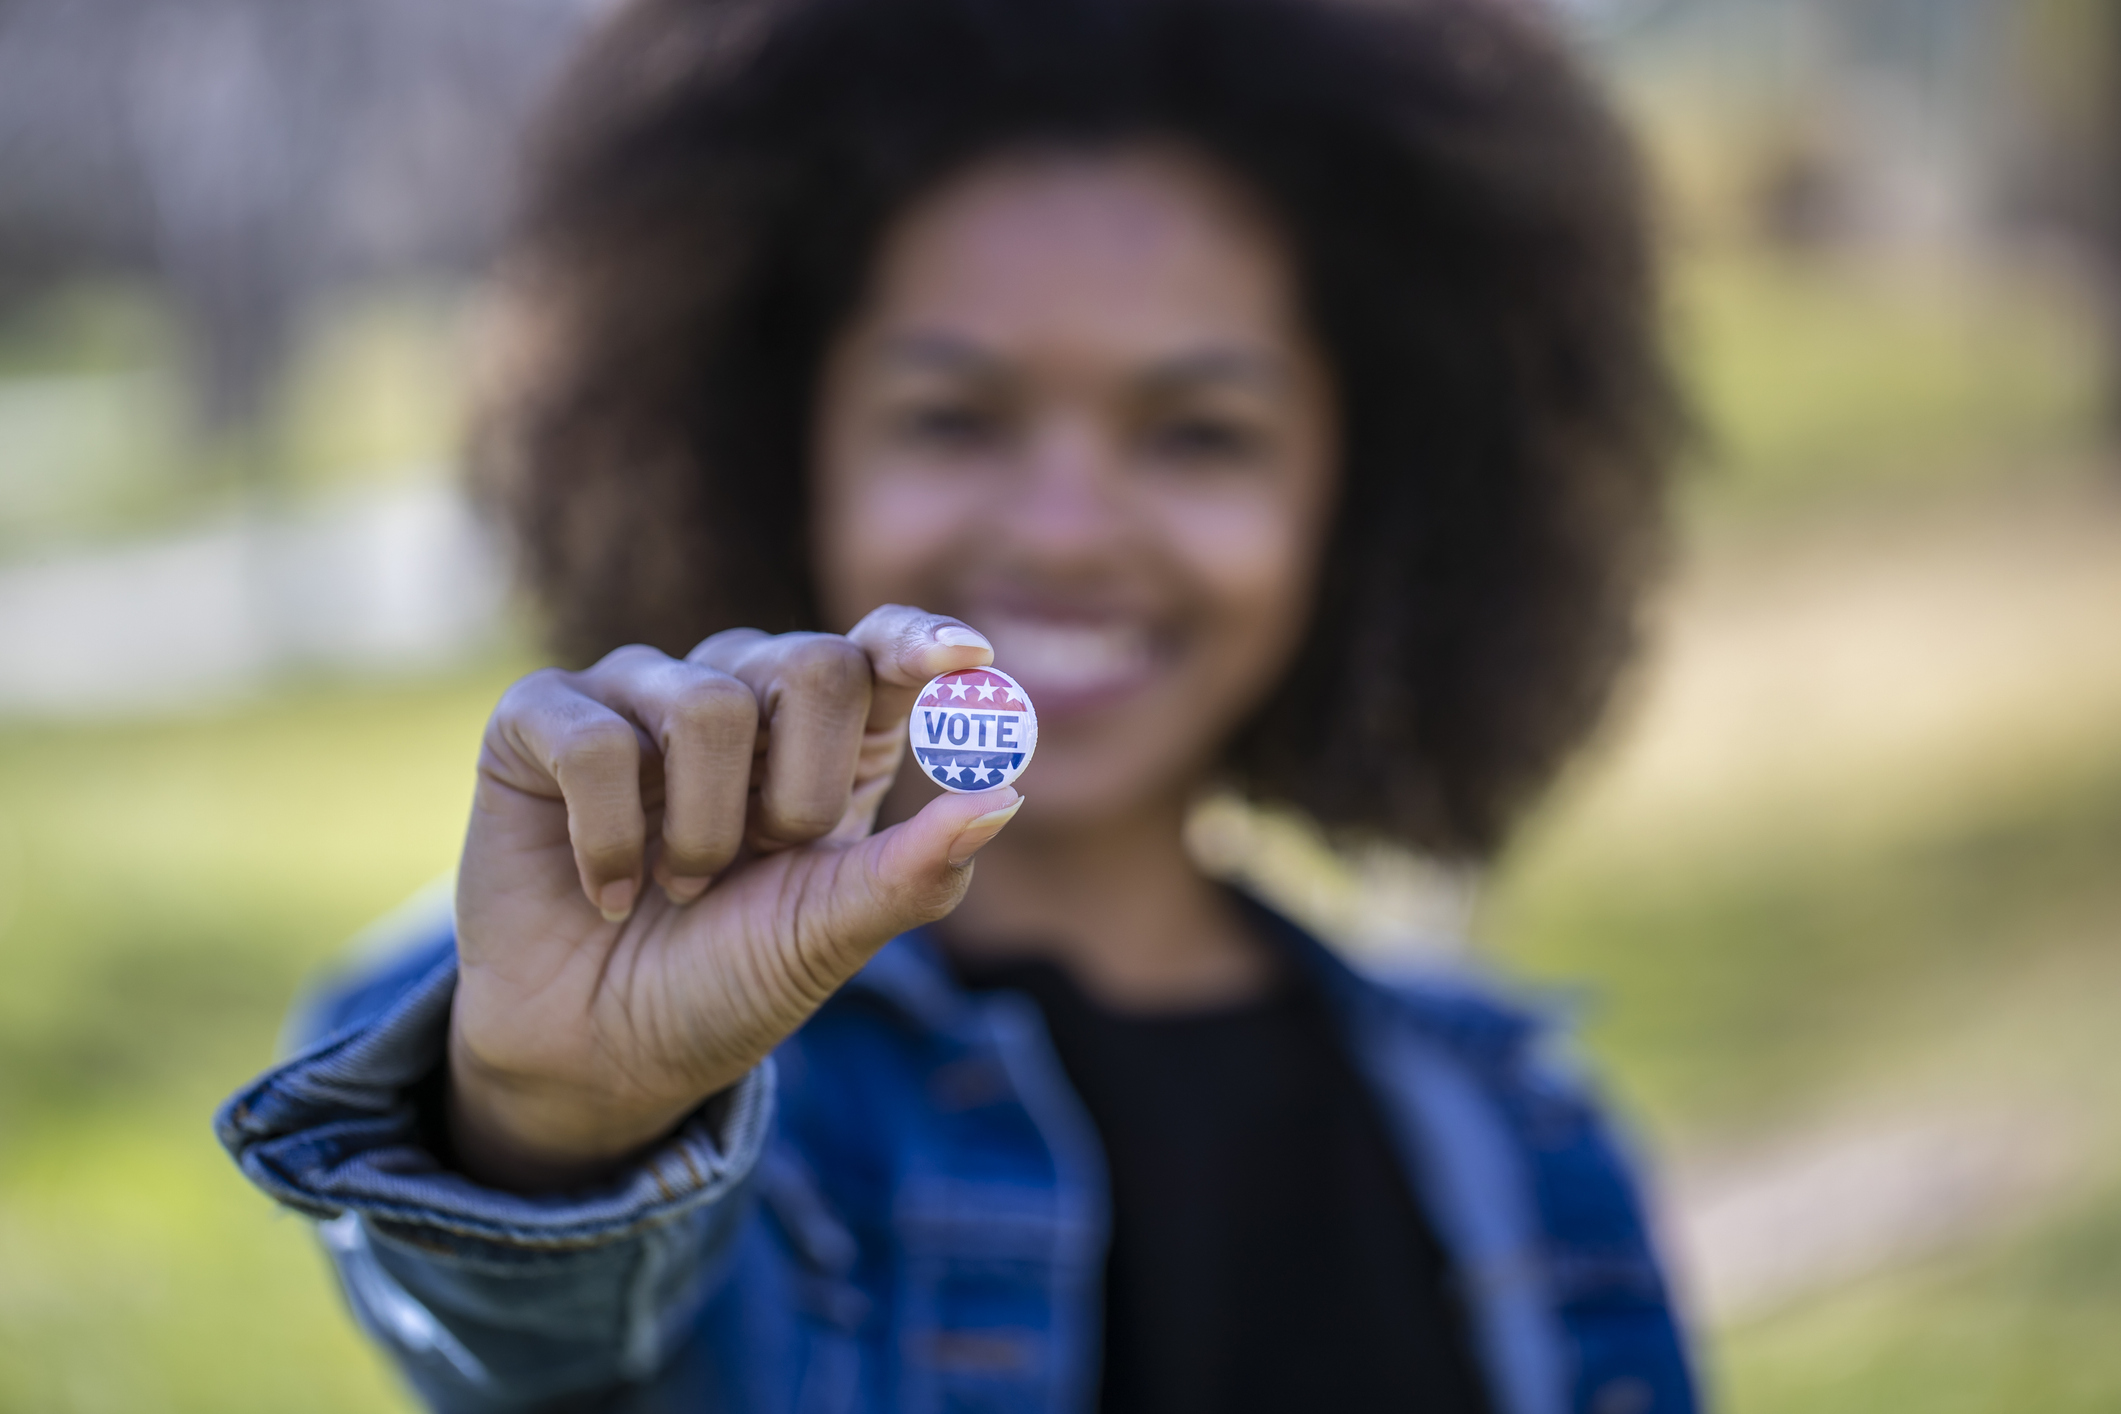 A young African American woman holding a voting badge.